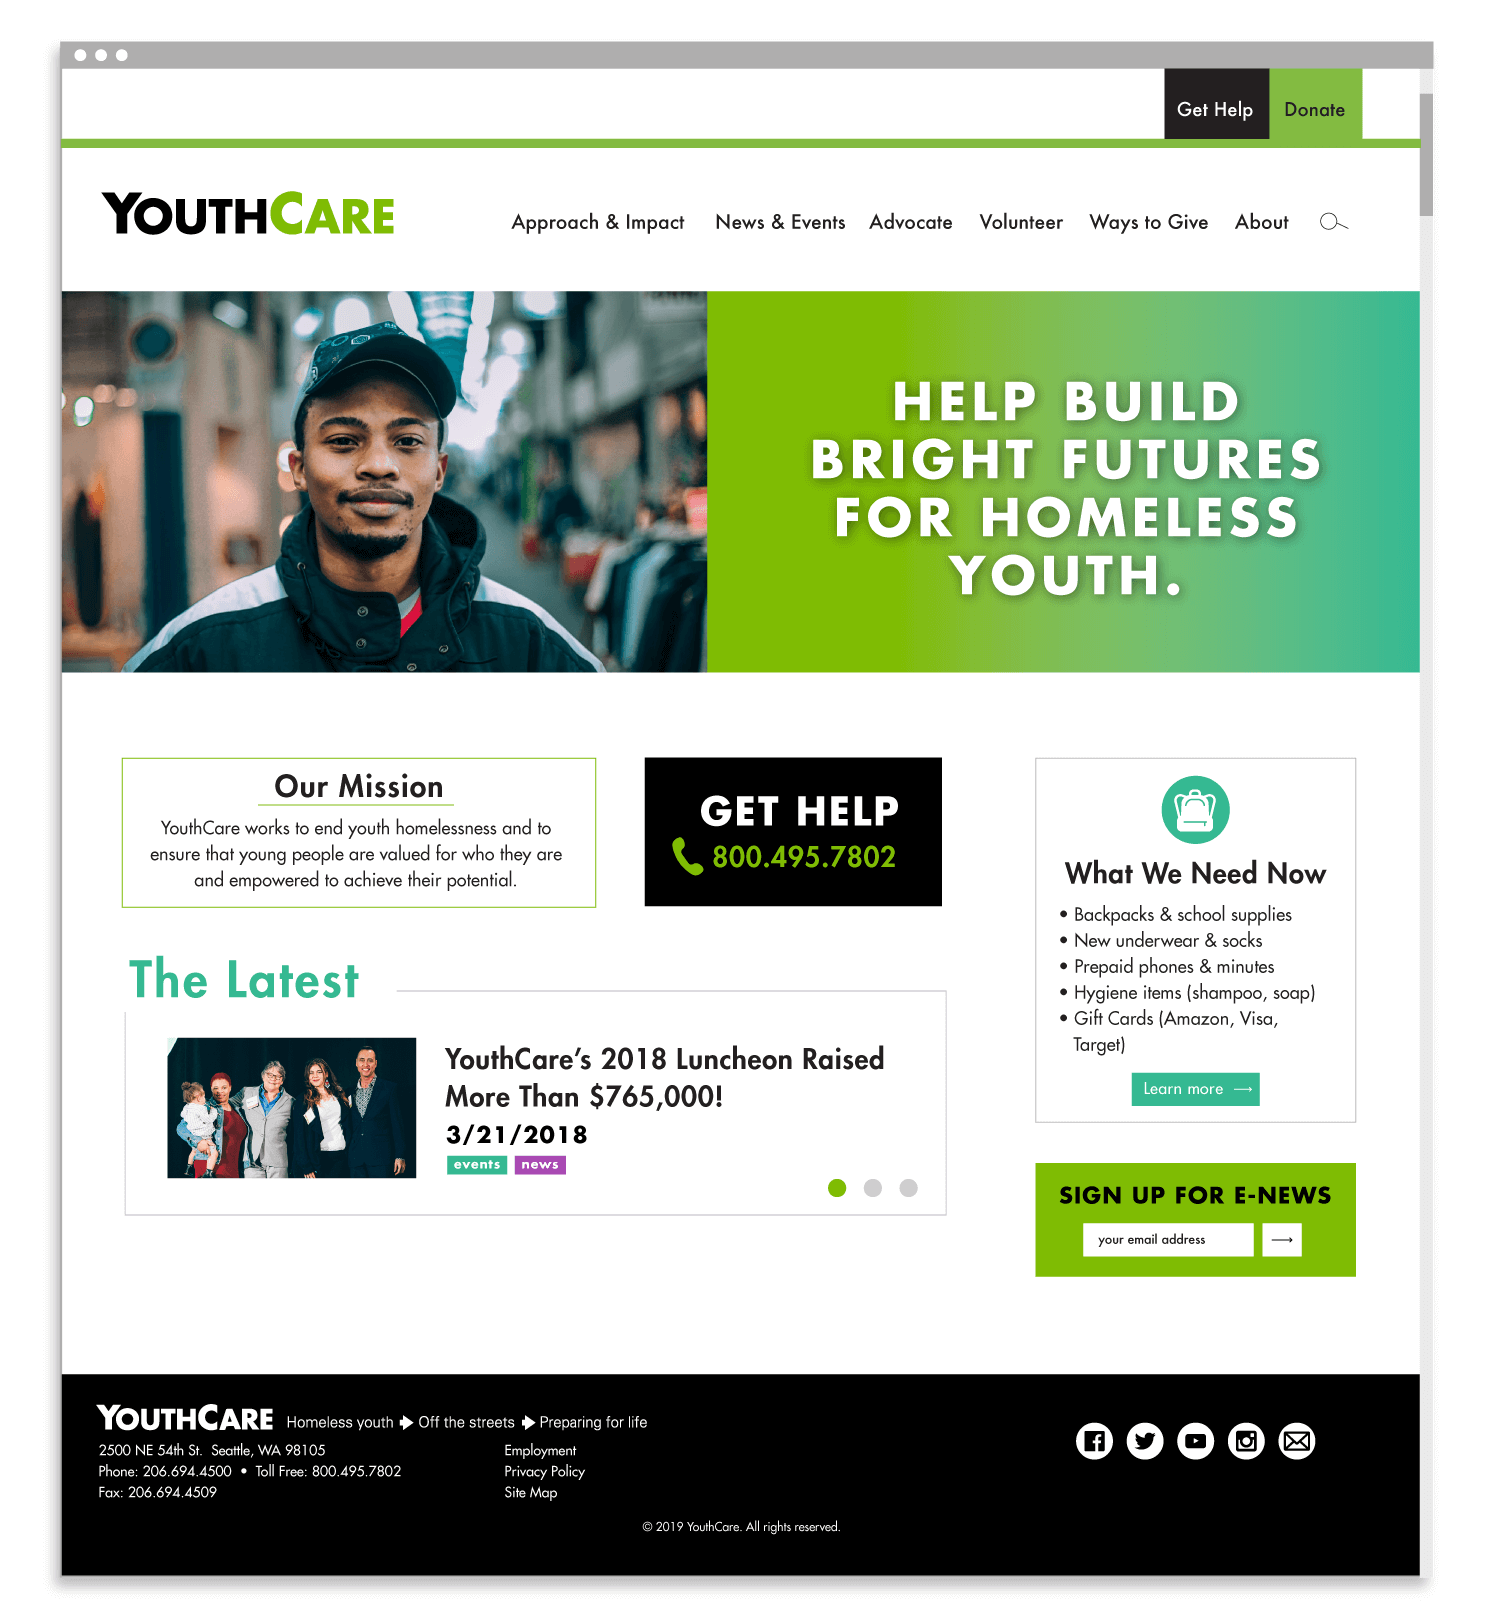 Kat-Marshello-YouthCare-Website-Design-Homepage.png